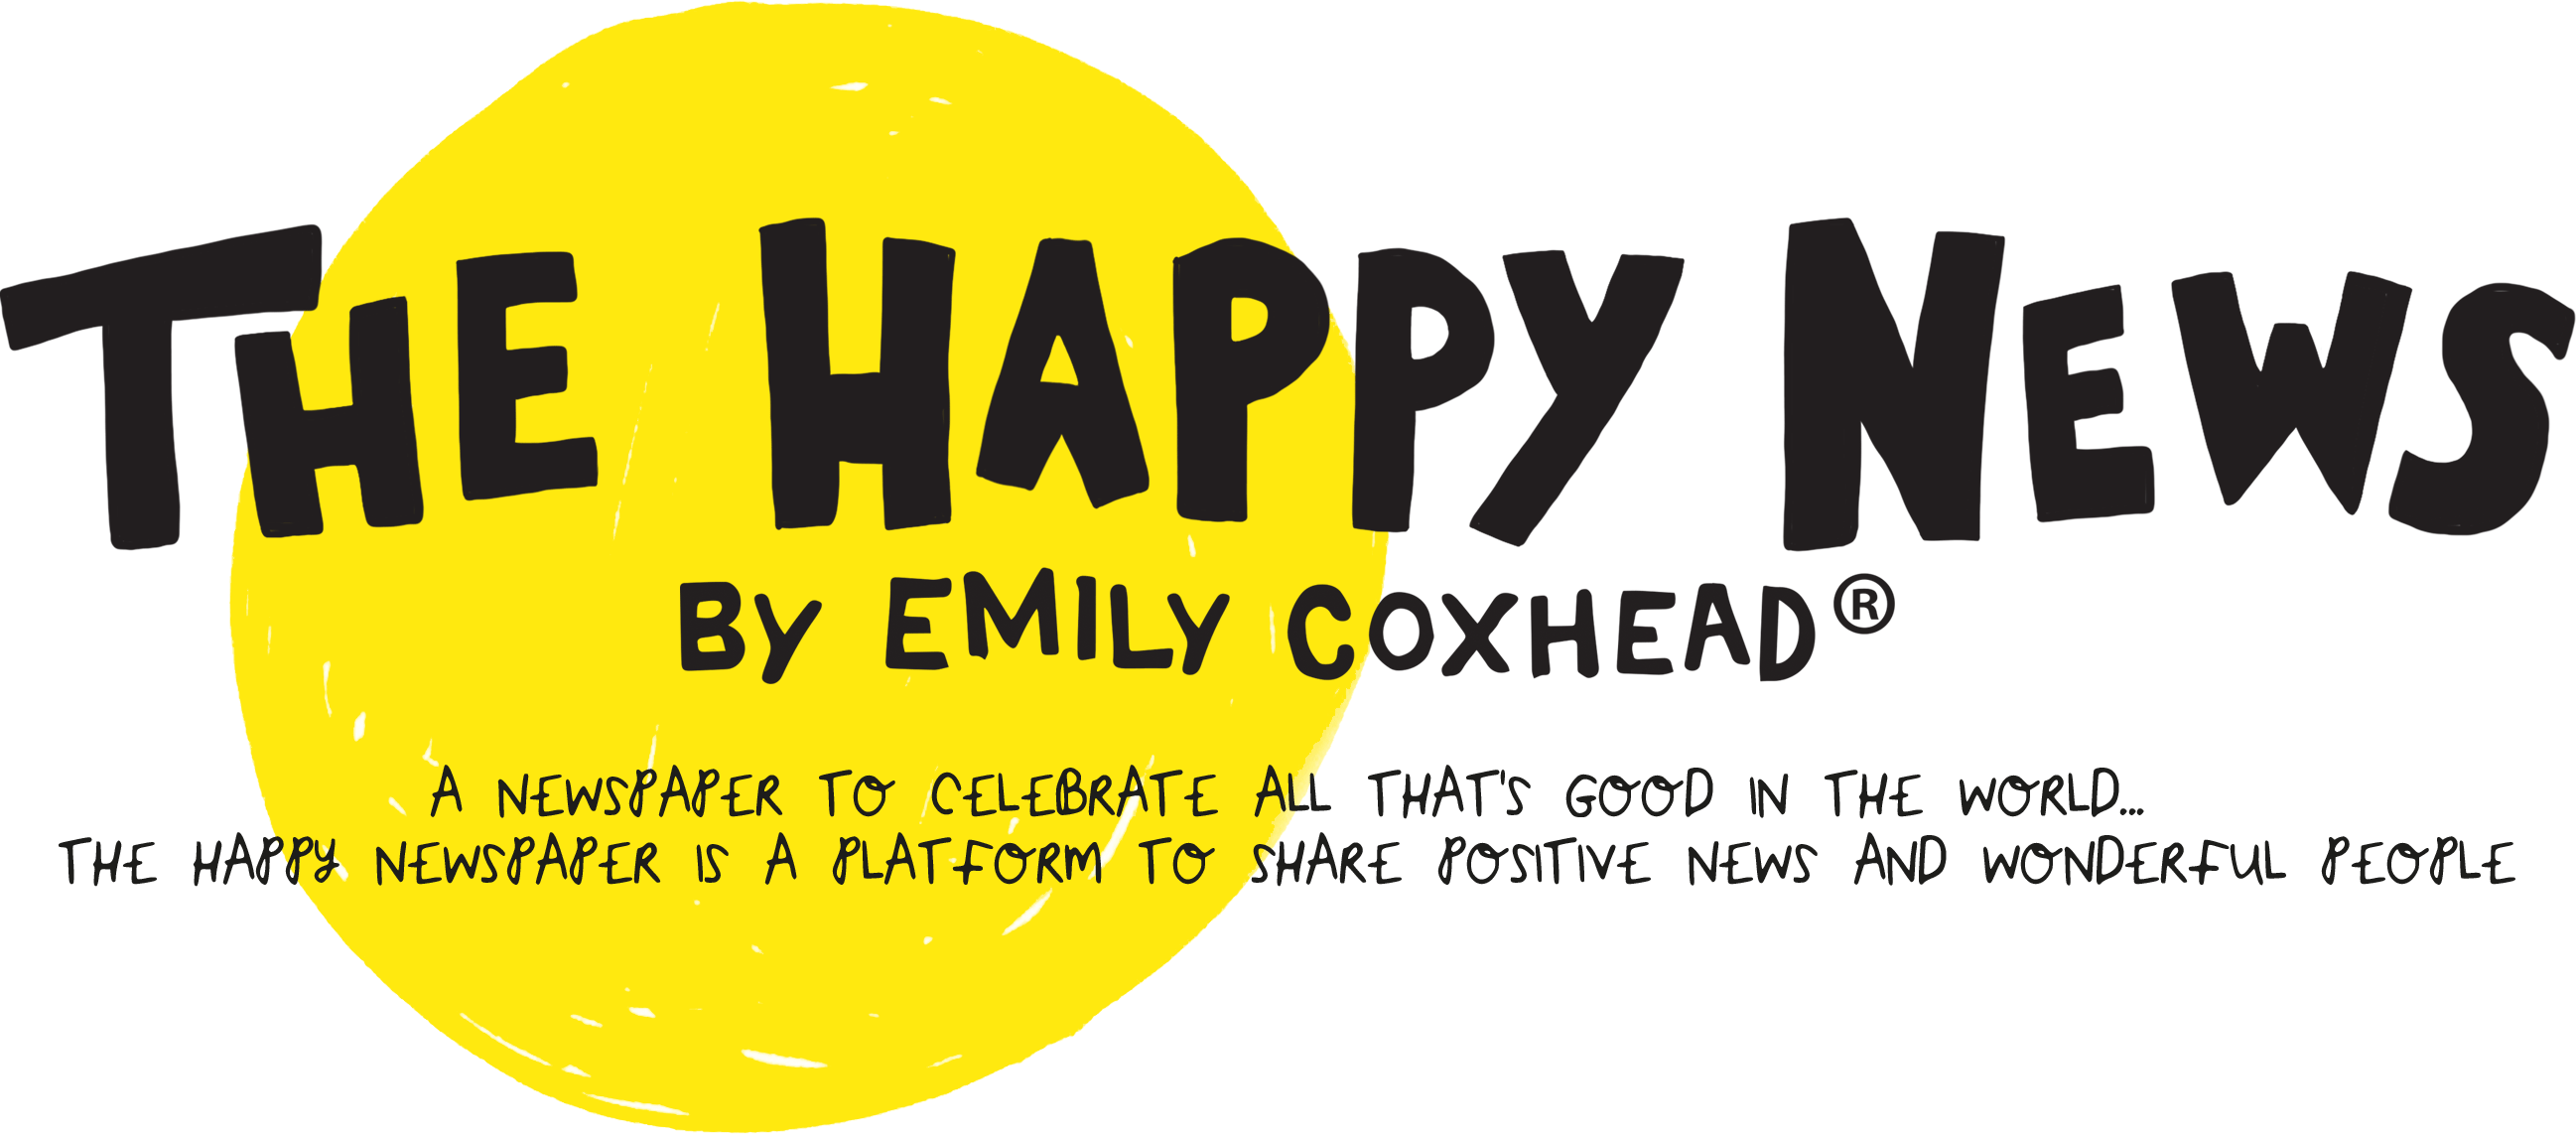 The Happy News. a newspaper to celebrate all that is good in the world. The Happy Newspaper is a platform to share positive news and wonderful people.